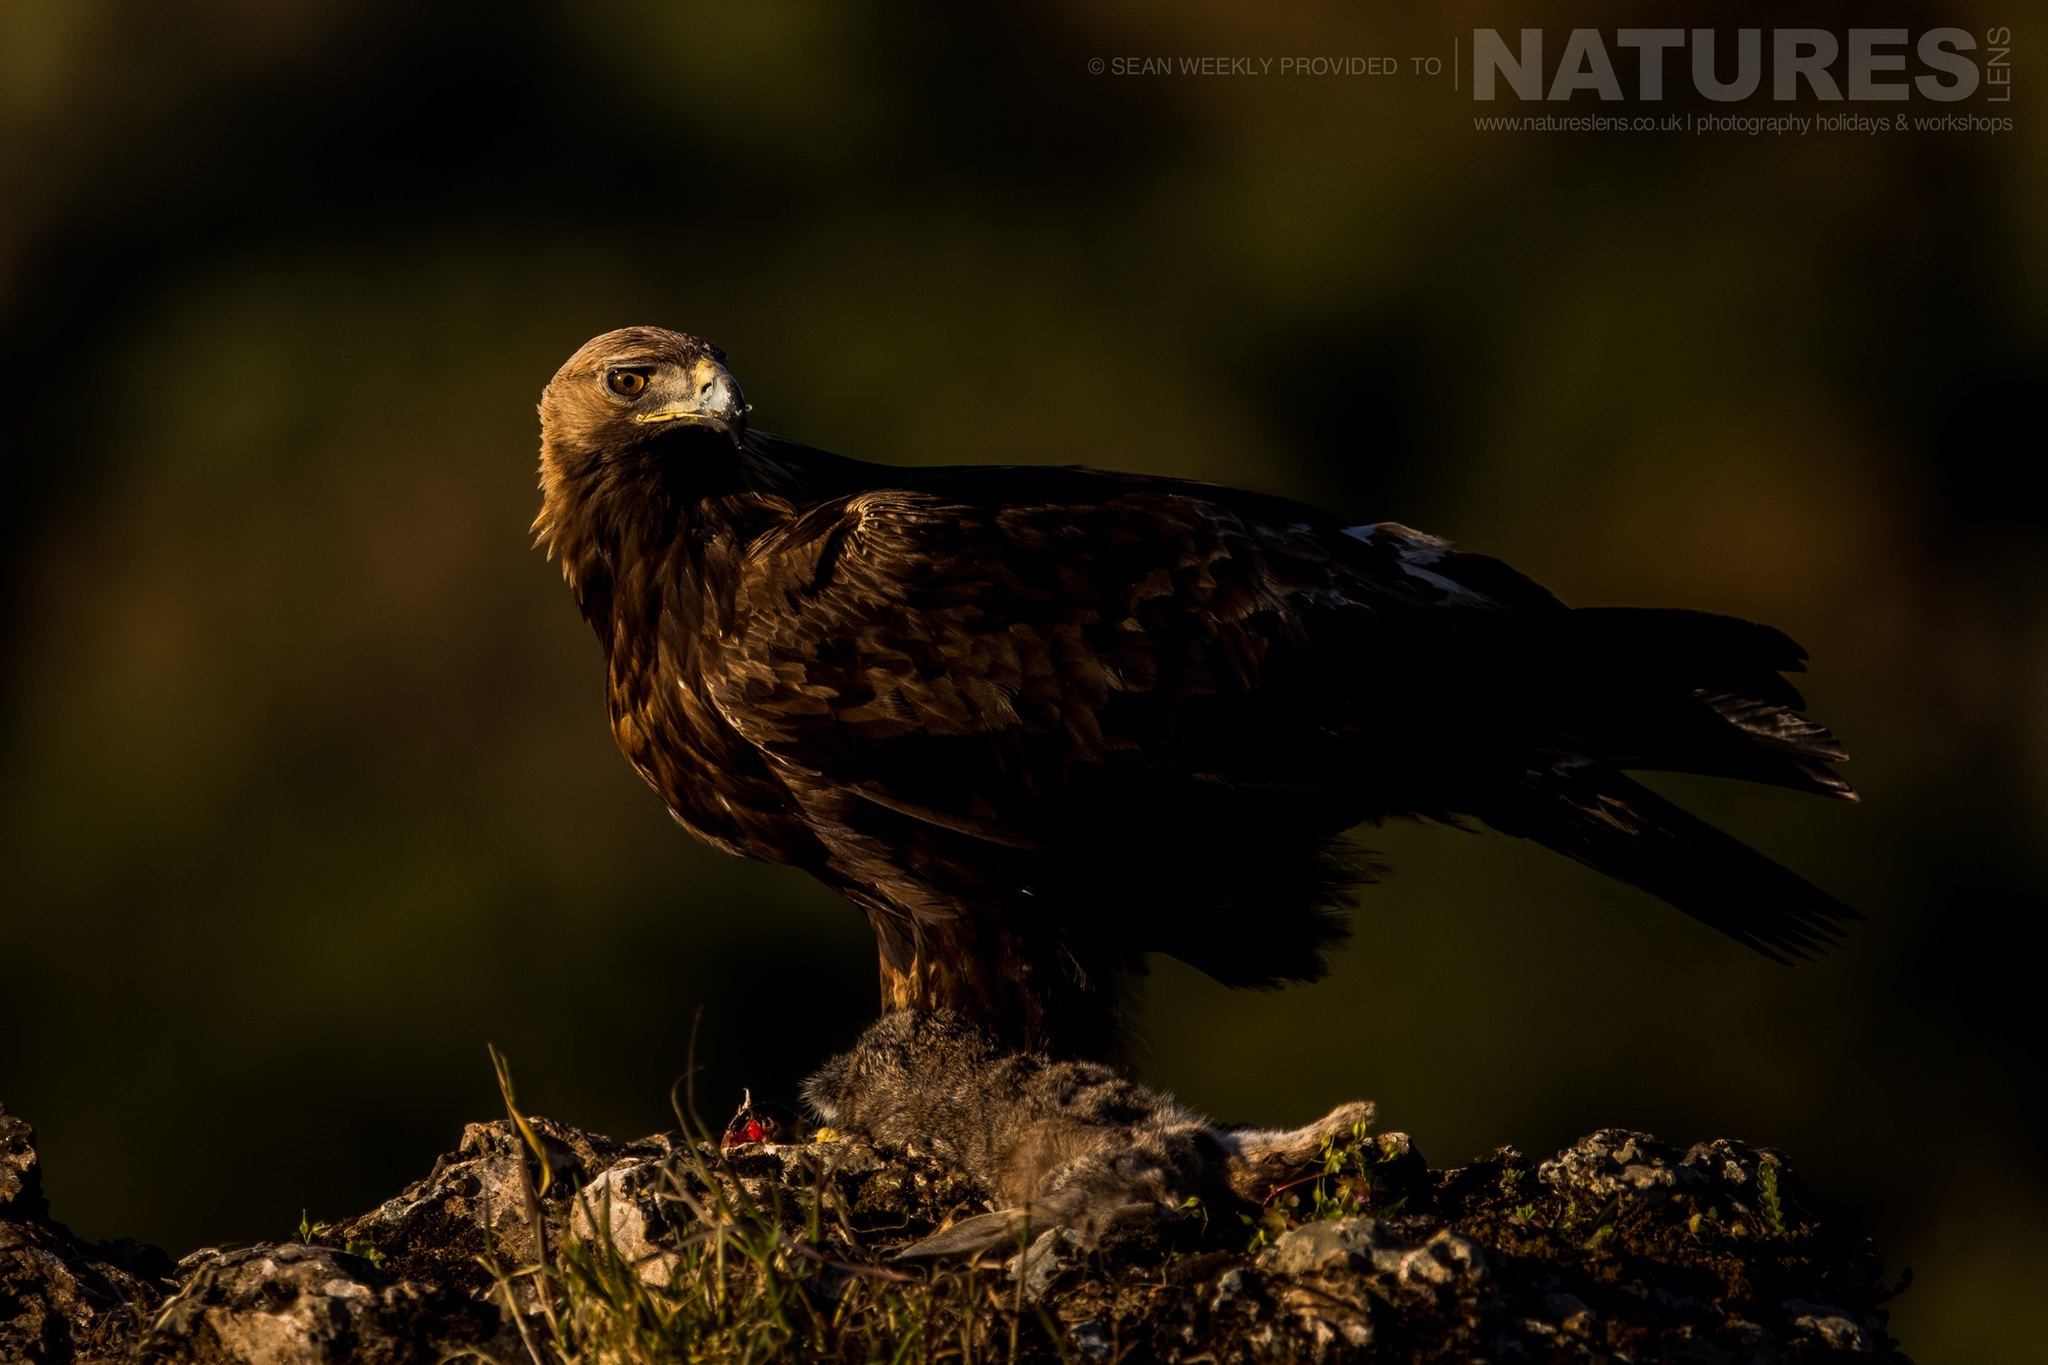 One Of The Golden Eagles Of The Area Around Adamuz In Spain   Image Captured During The NaturesLens Golden Eagles & Raptors Of Spain Photography Holiday